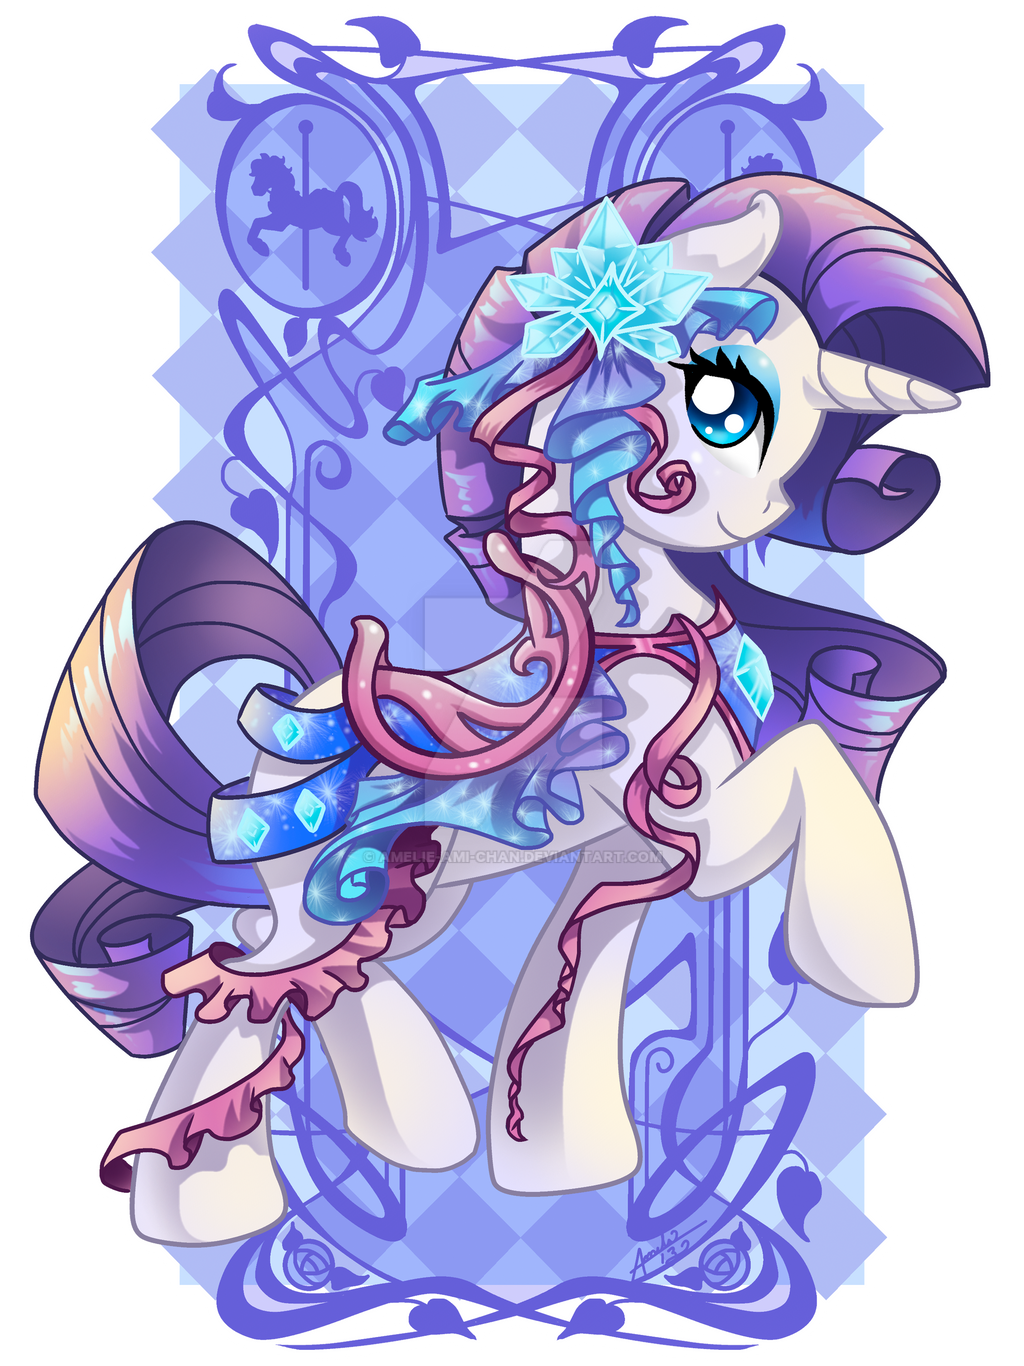 Flutter Shy My Little Pony by Amelie-ami-chan on